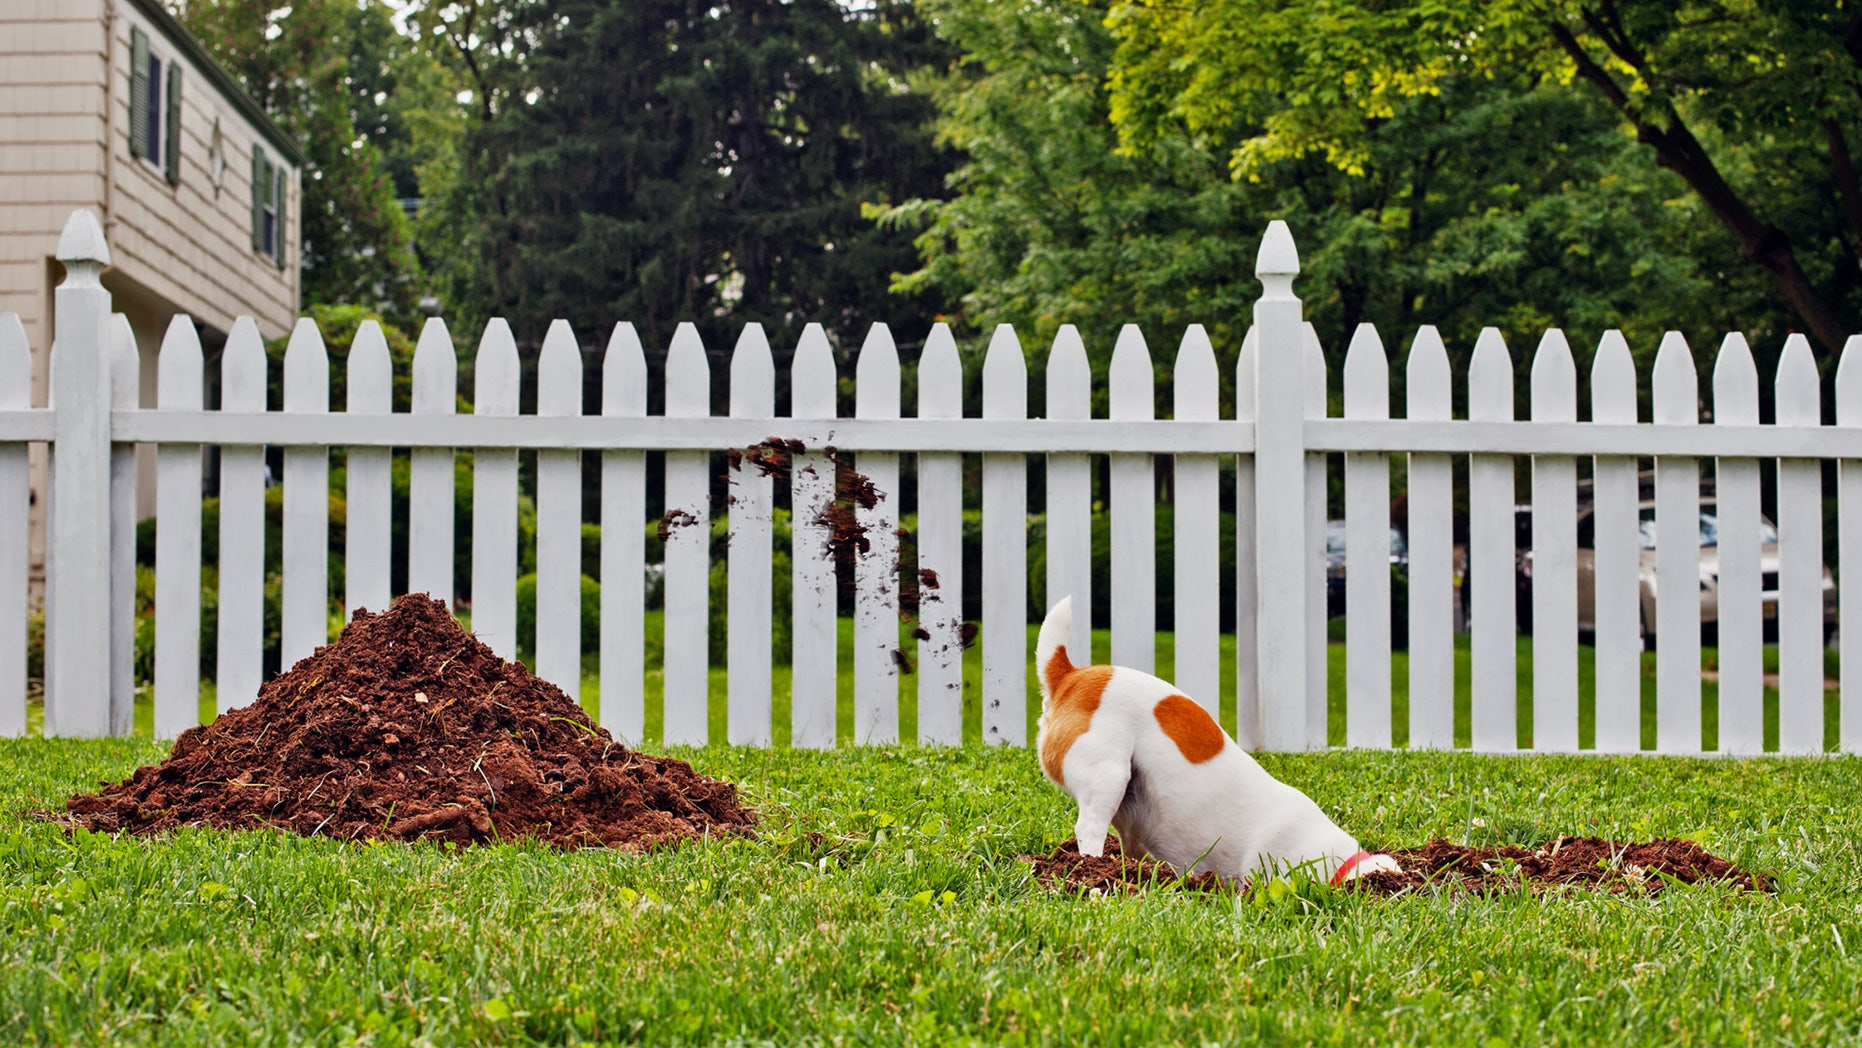 Dog digging hole in yard